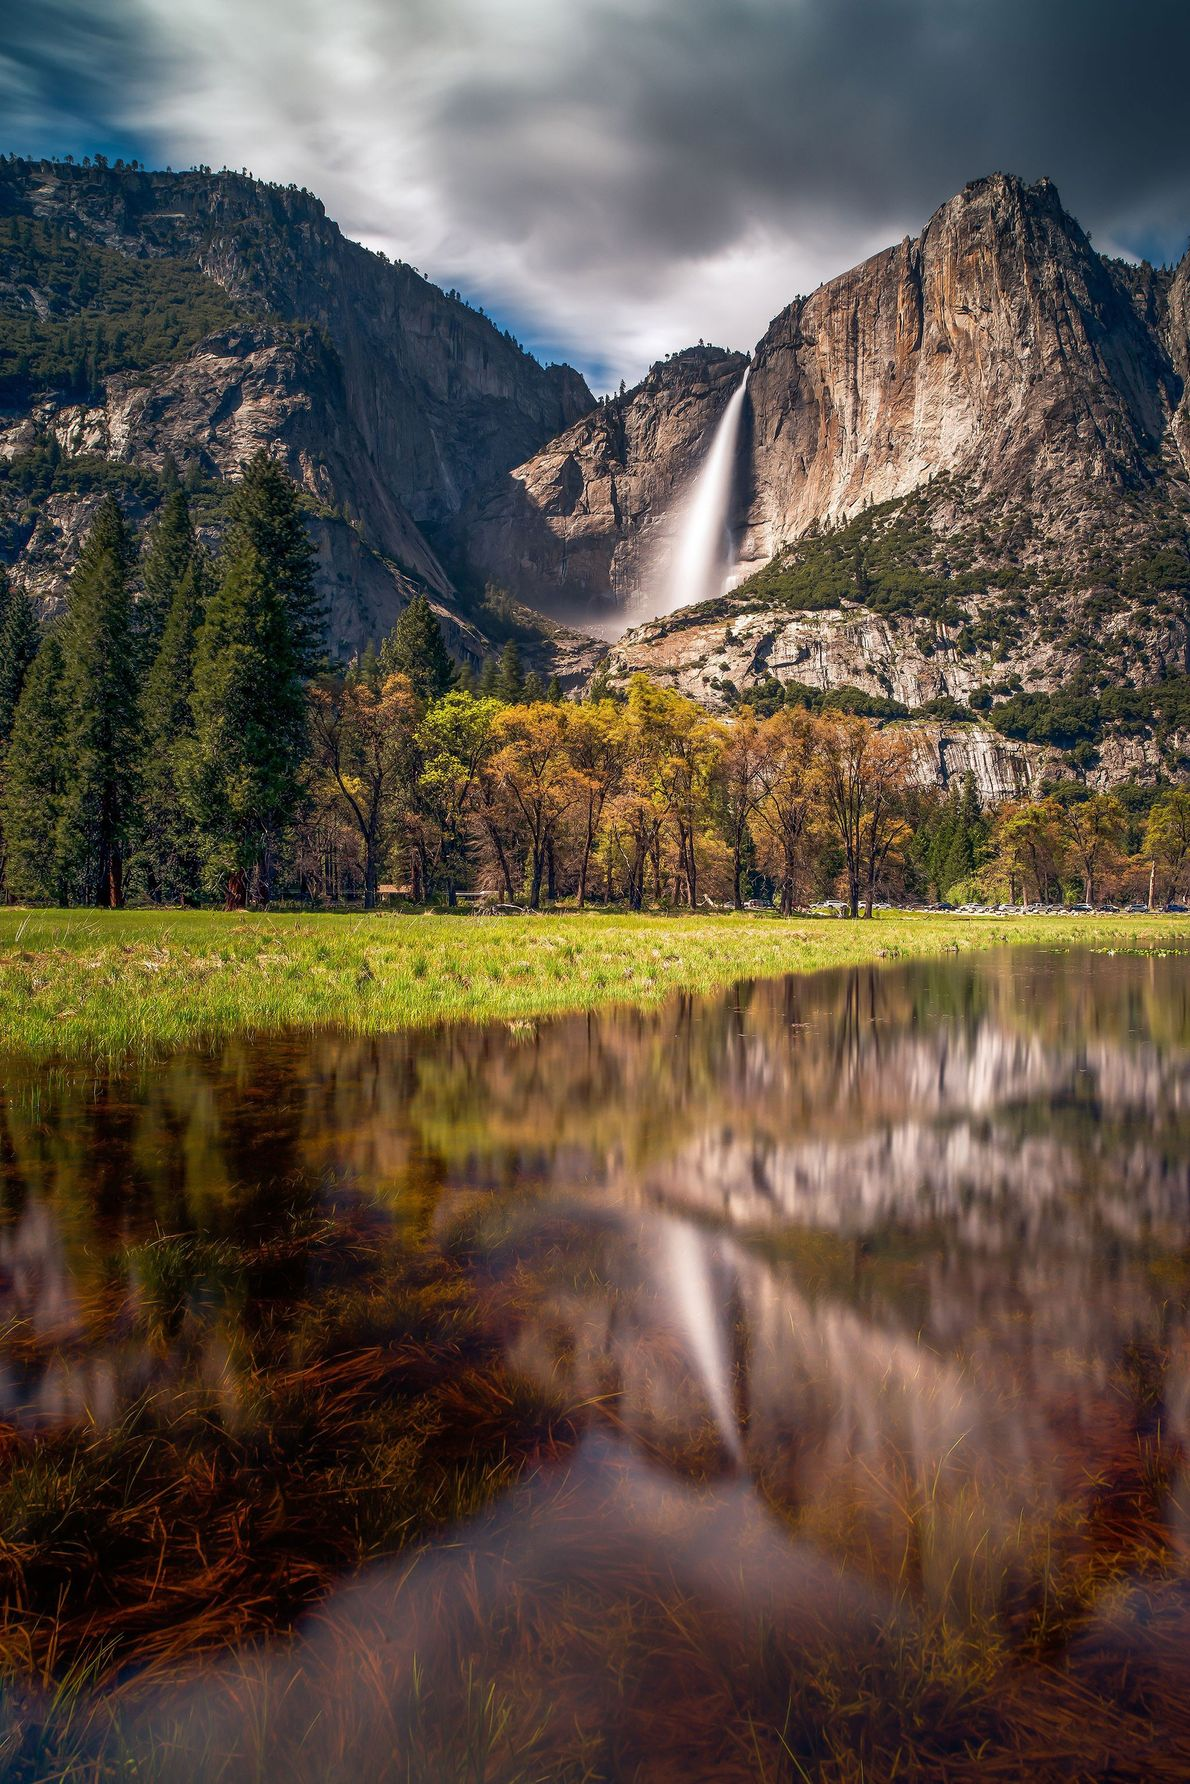 In late April, snowmelt increases the flow of the iconic, 2,425-foot waterfall.